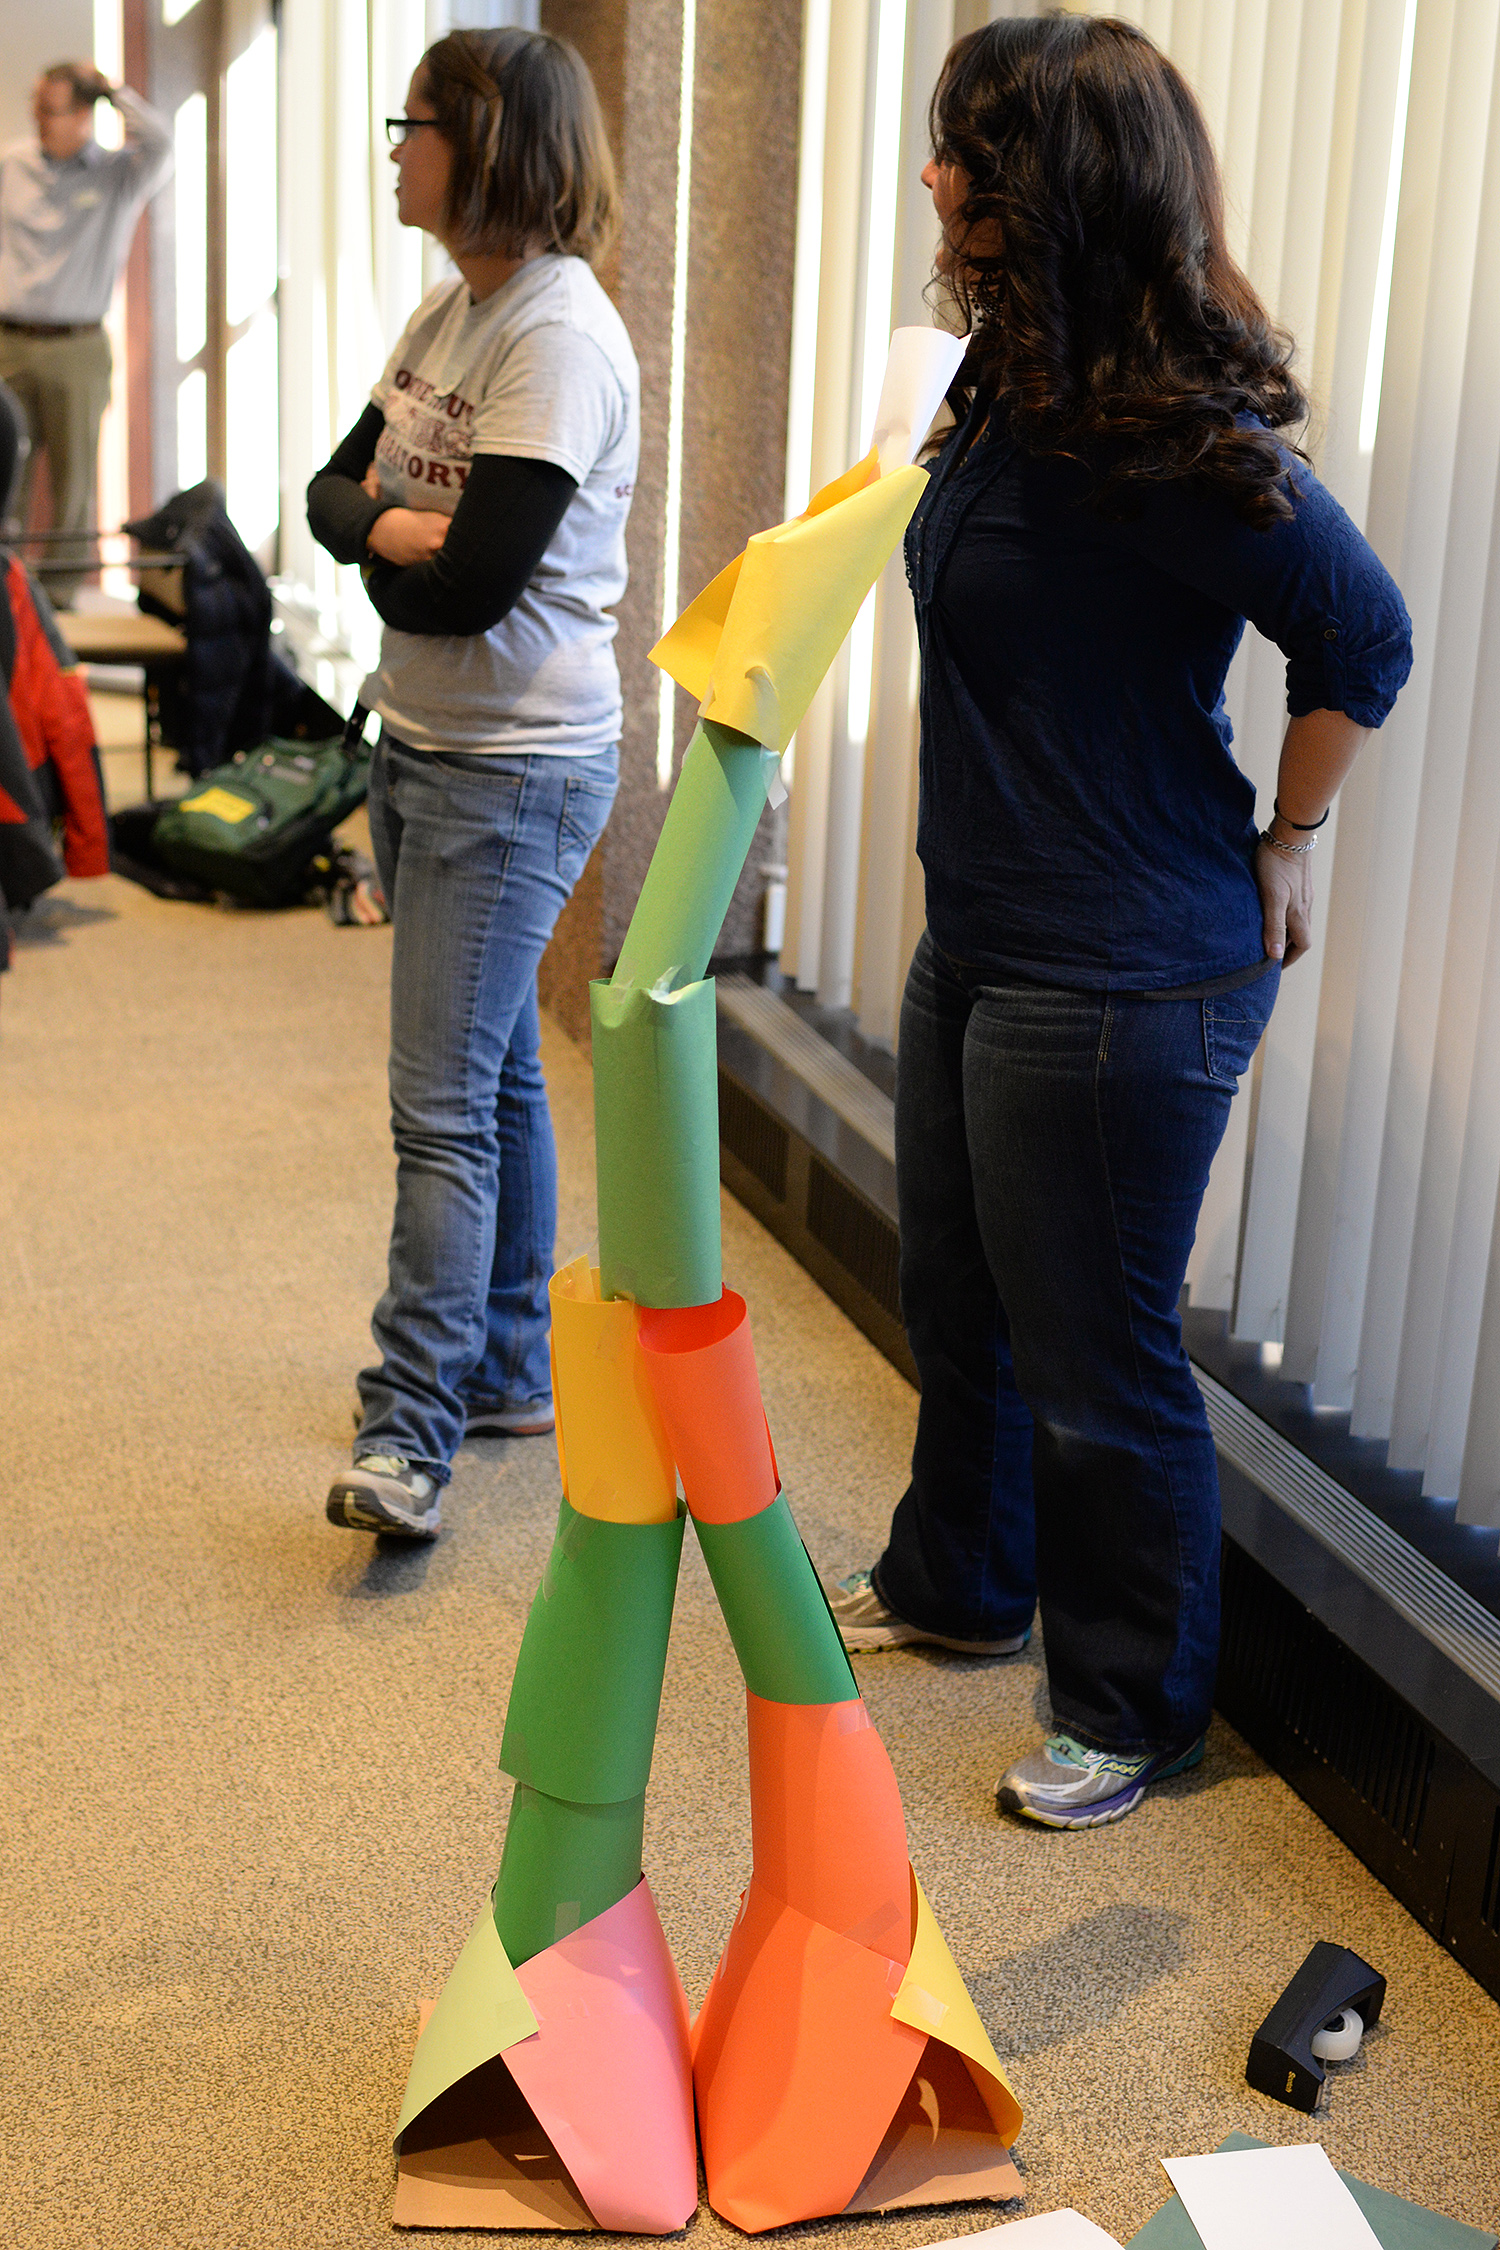 While none of the groups were able to build a five-foot tall structure, the winning group's tower was 54.5 inches high (4.5 feet).